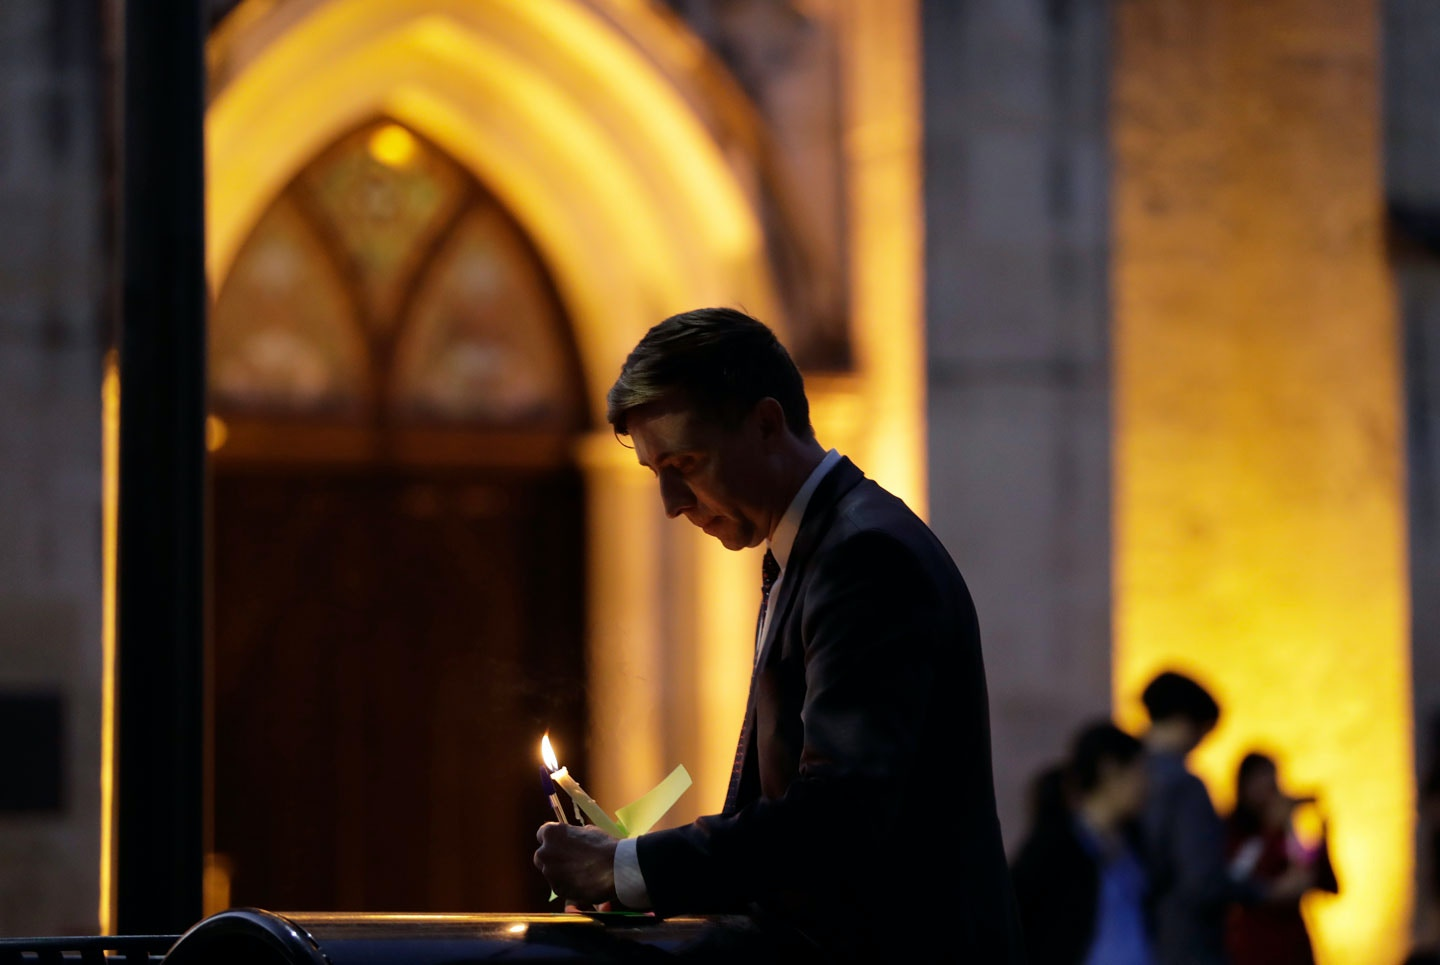 Jonathan Ryan writes a note of home as he joins other community activists in front of San Fernando Cathedral for a vigil on the eve of President-elect Donald Trump's inauguration, Thursday, Jan. 19, 2017, in San Antonio. The group gathered to show their support for immigration groups, women's groups, minorities, and others they fear may be harmed by the new administration's policies. (AP Photo/Eric Gay)